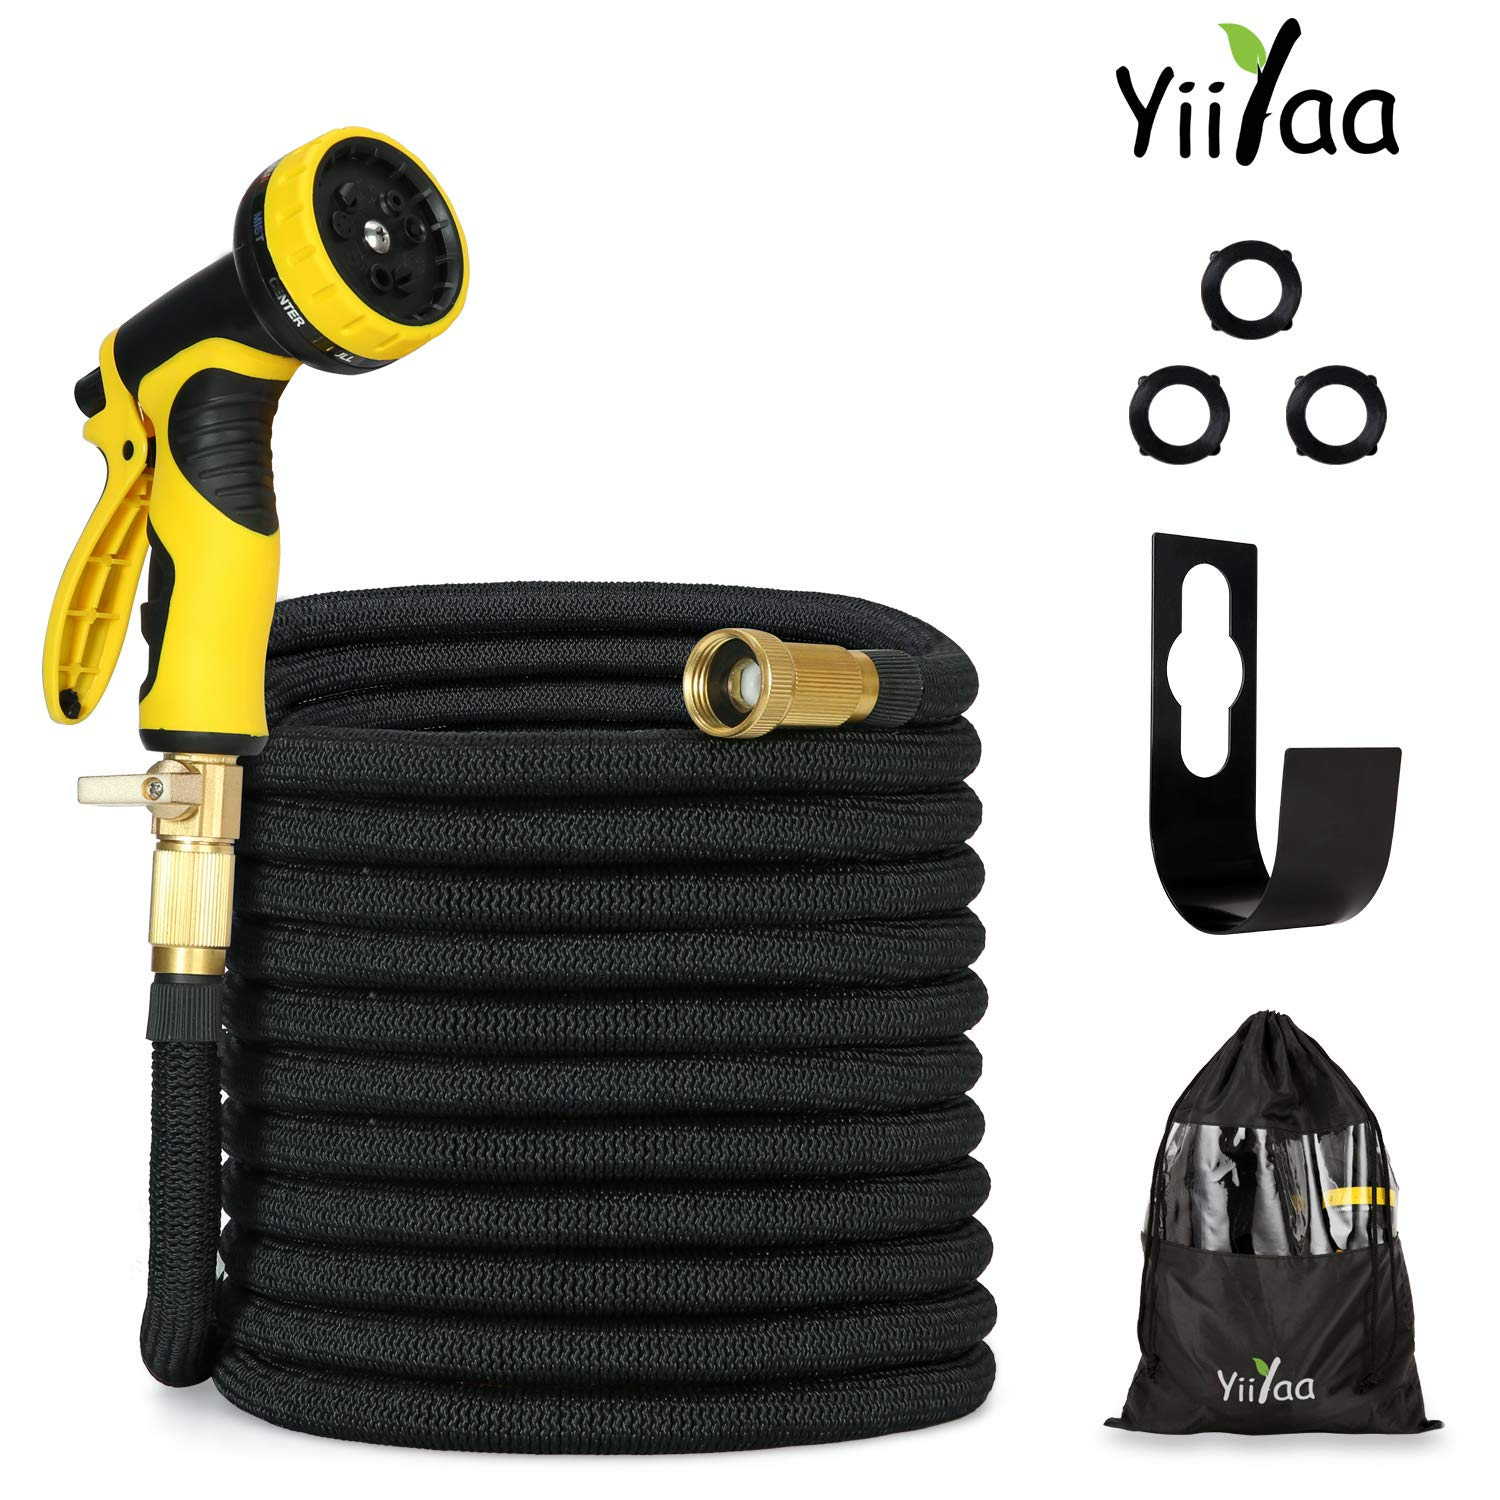 2018 Expandable Garden Hose 75ft Strongest Expandable Water hose 100% No-Rust & Leak,3/4 Solid Brass Fitting,Extra Strength Fabric and Double Latex Core,Flexible Water Hose with 9-Way Spray Nozzle